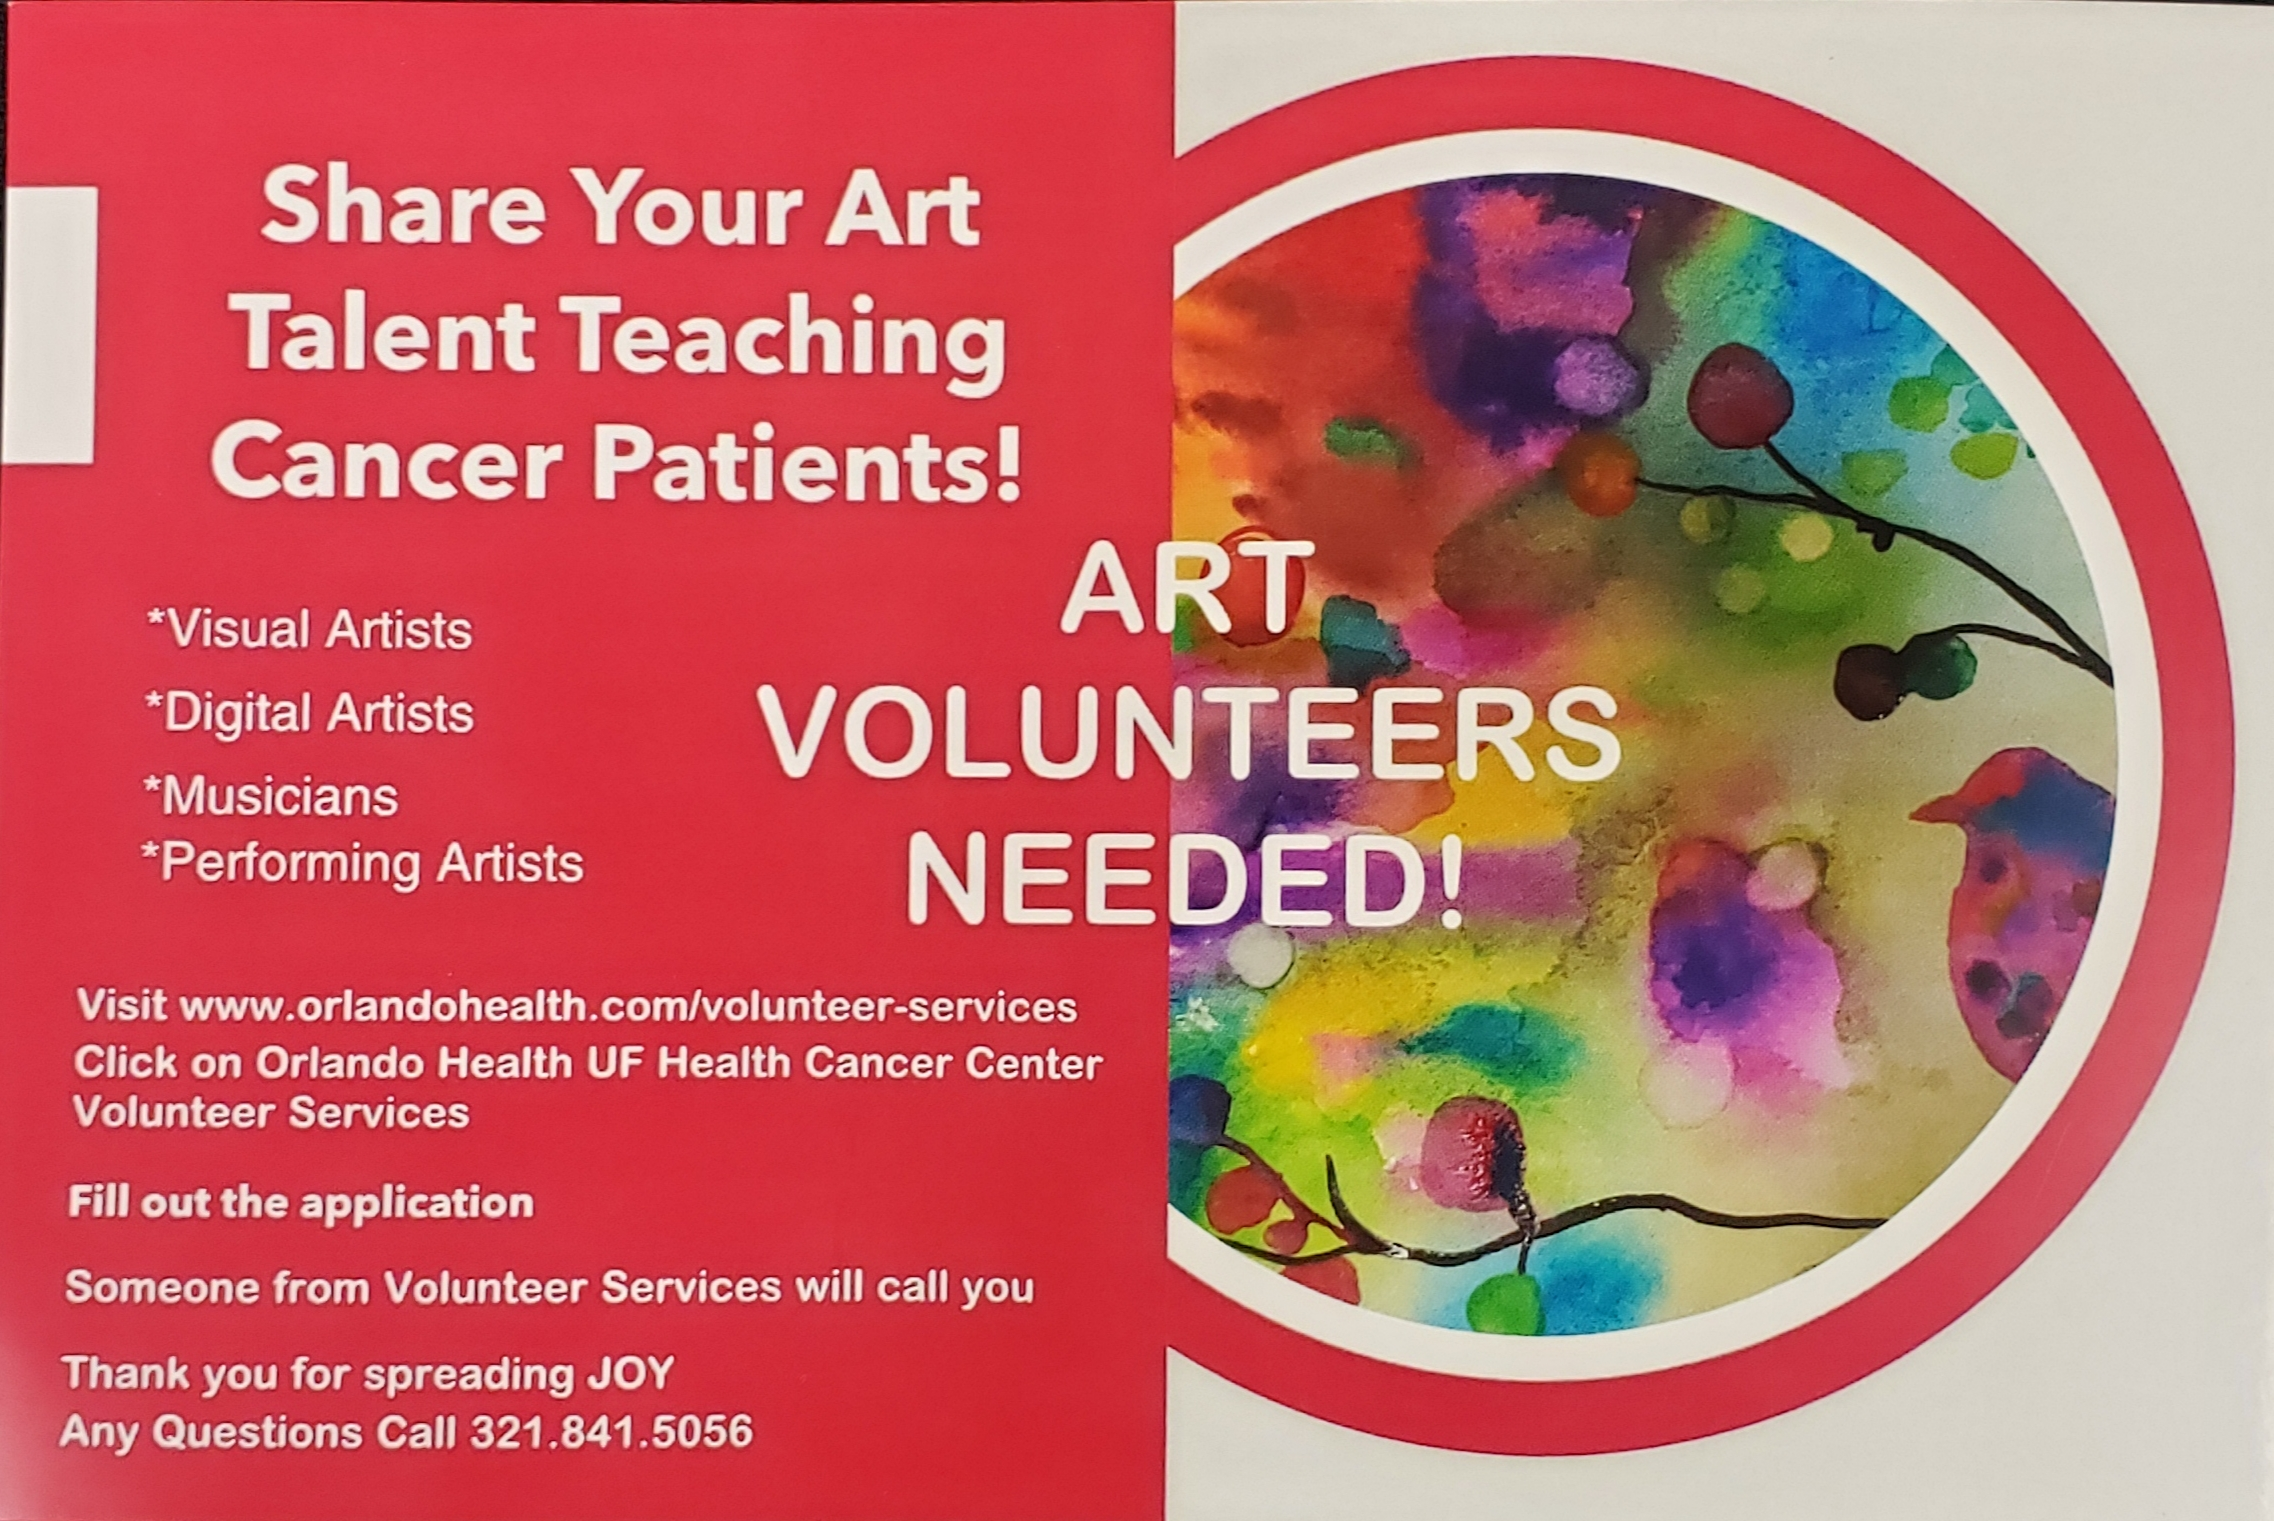 Share Your Art Talent Teaching Cancer Patients! presented by